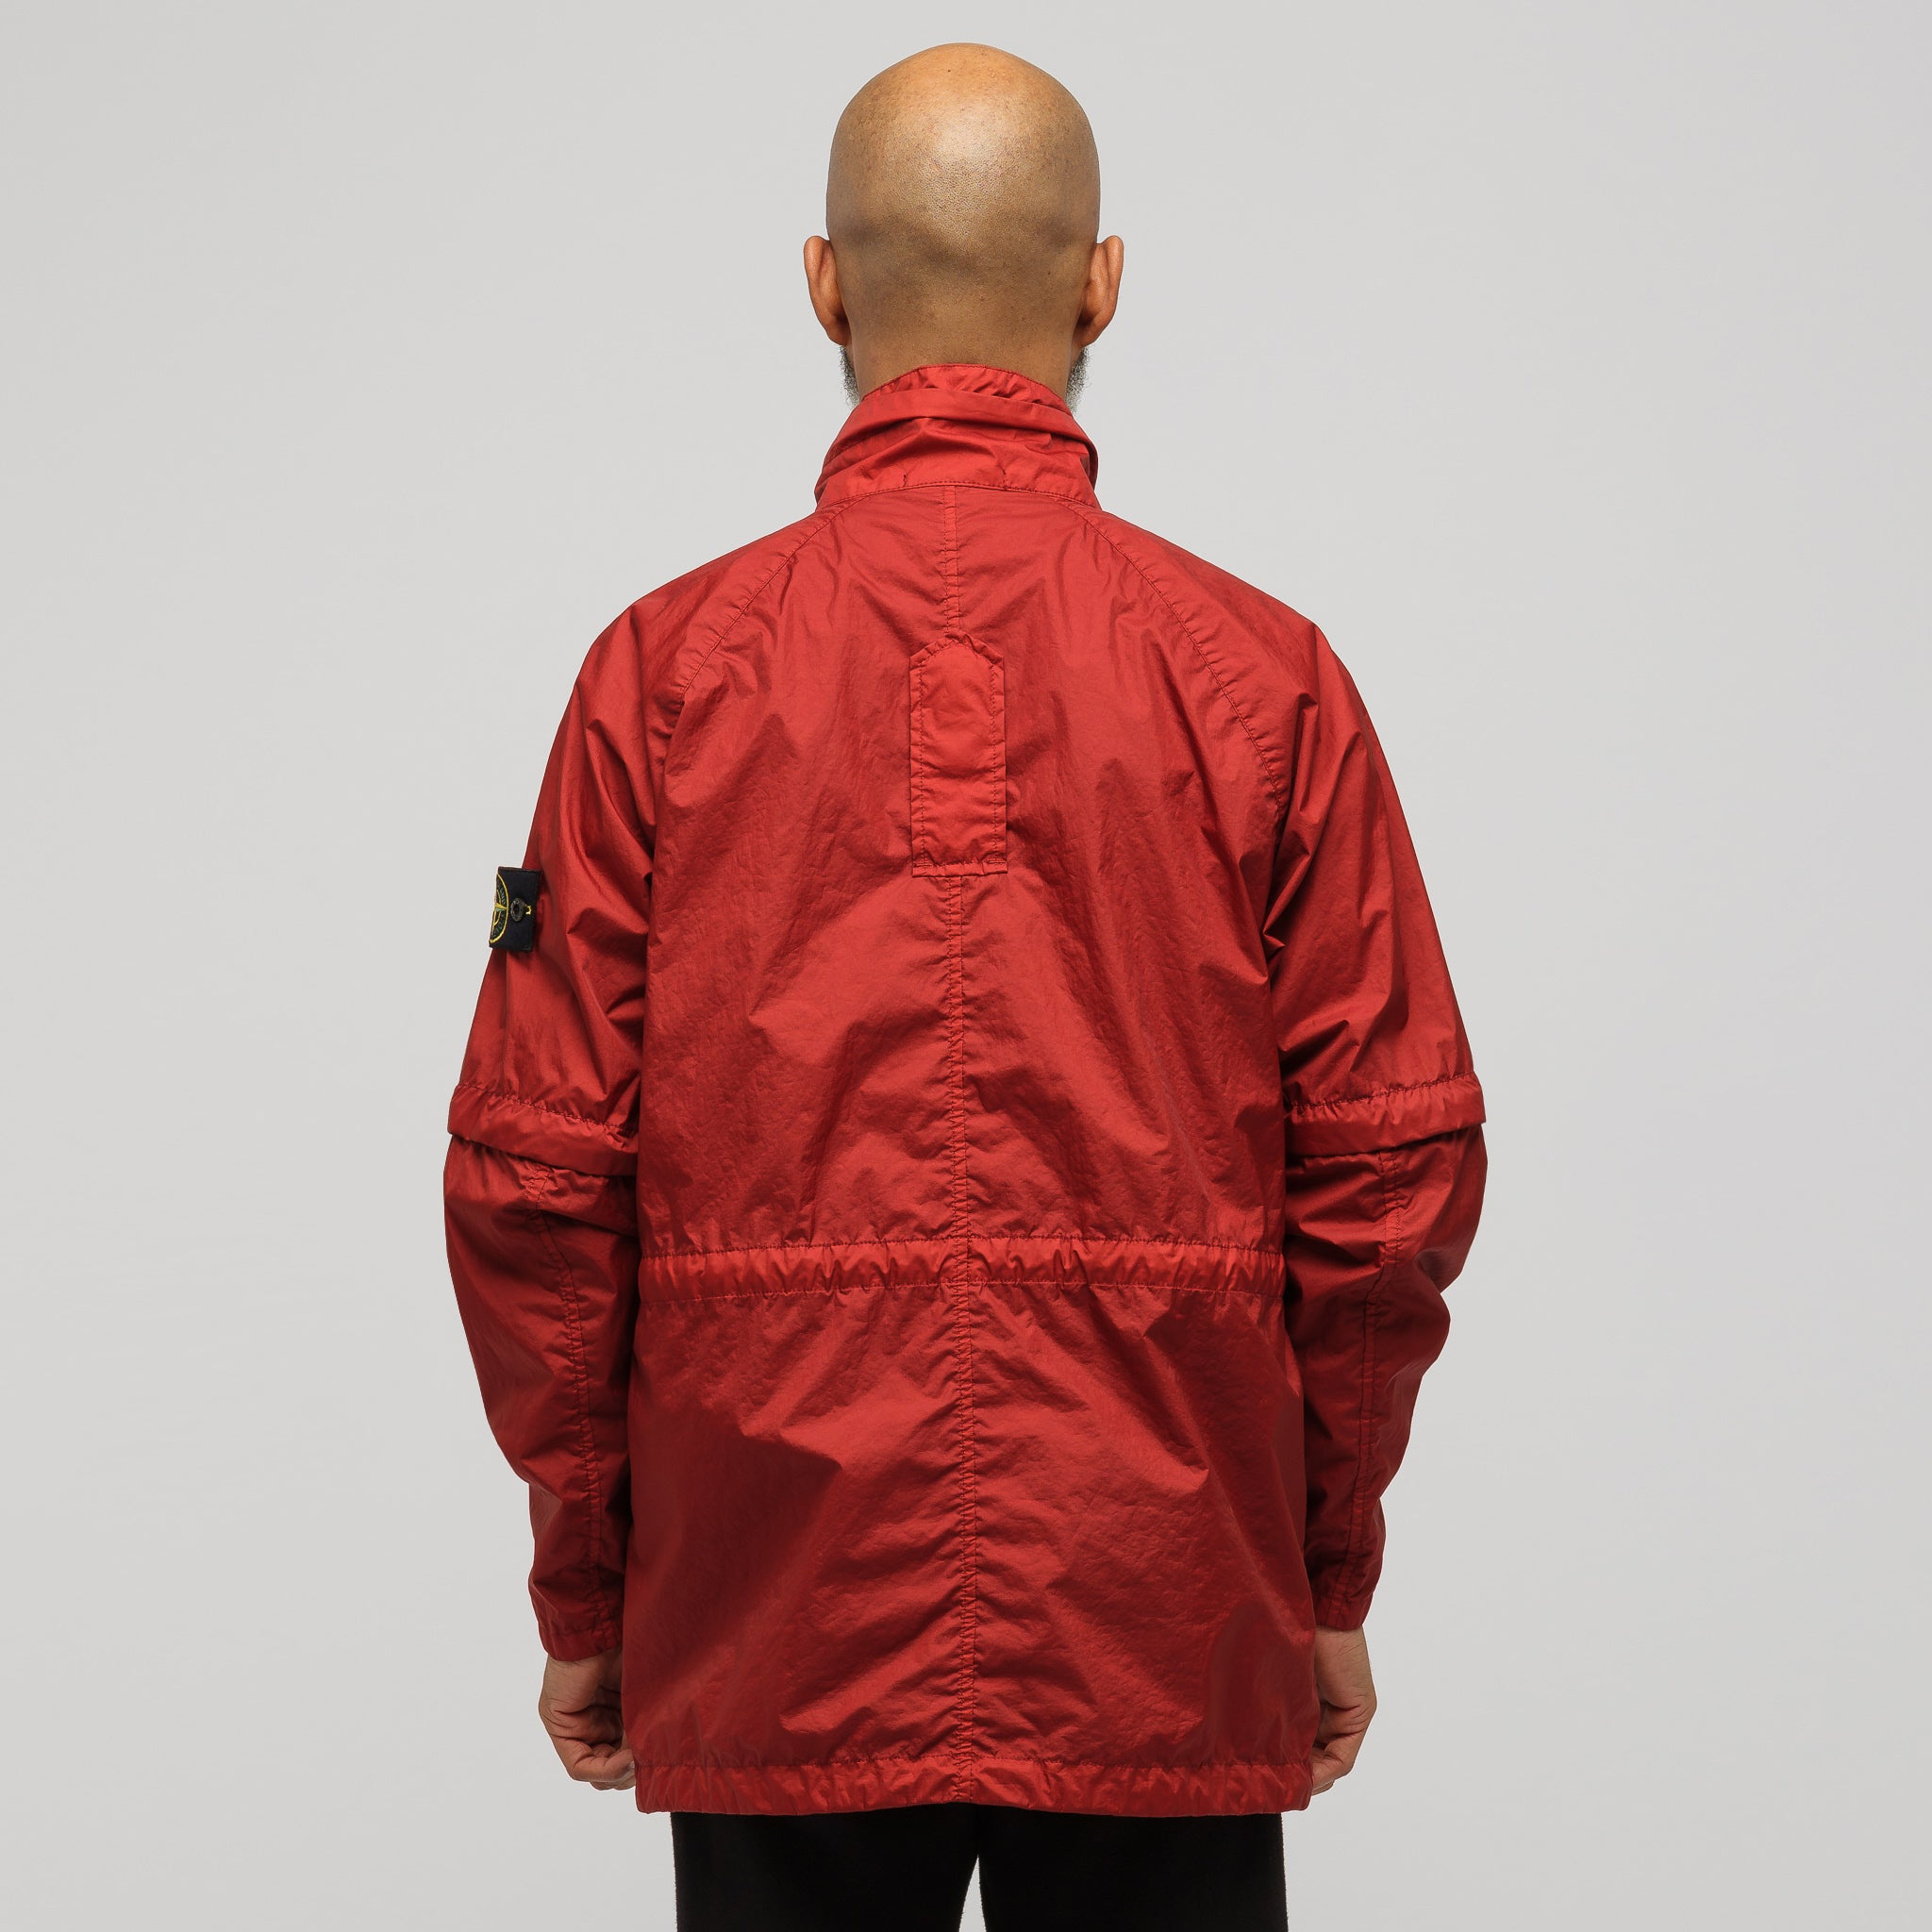 40223 Membrana 3L TC Jacket in Brick Red